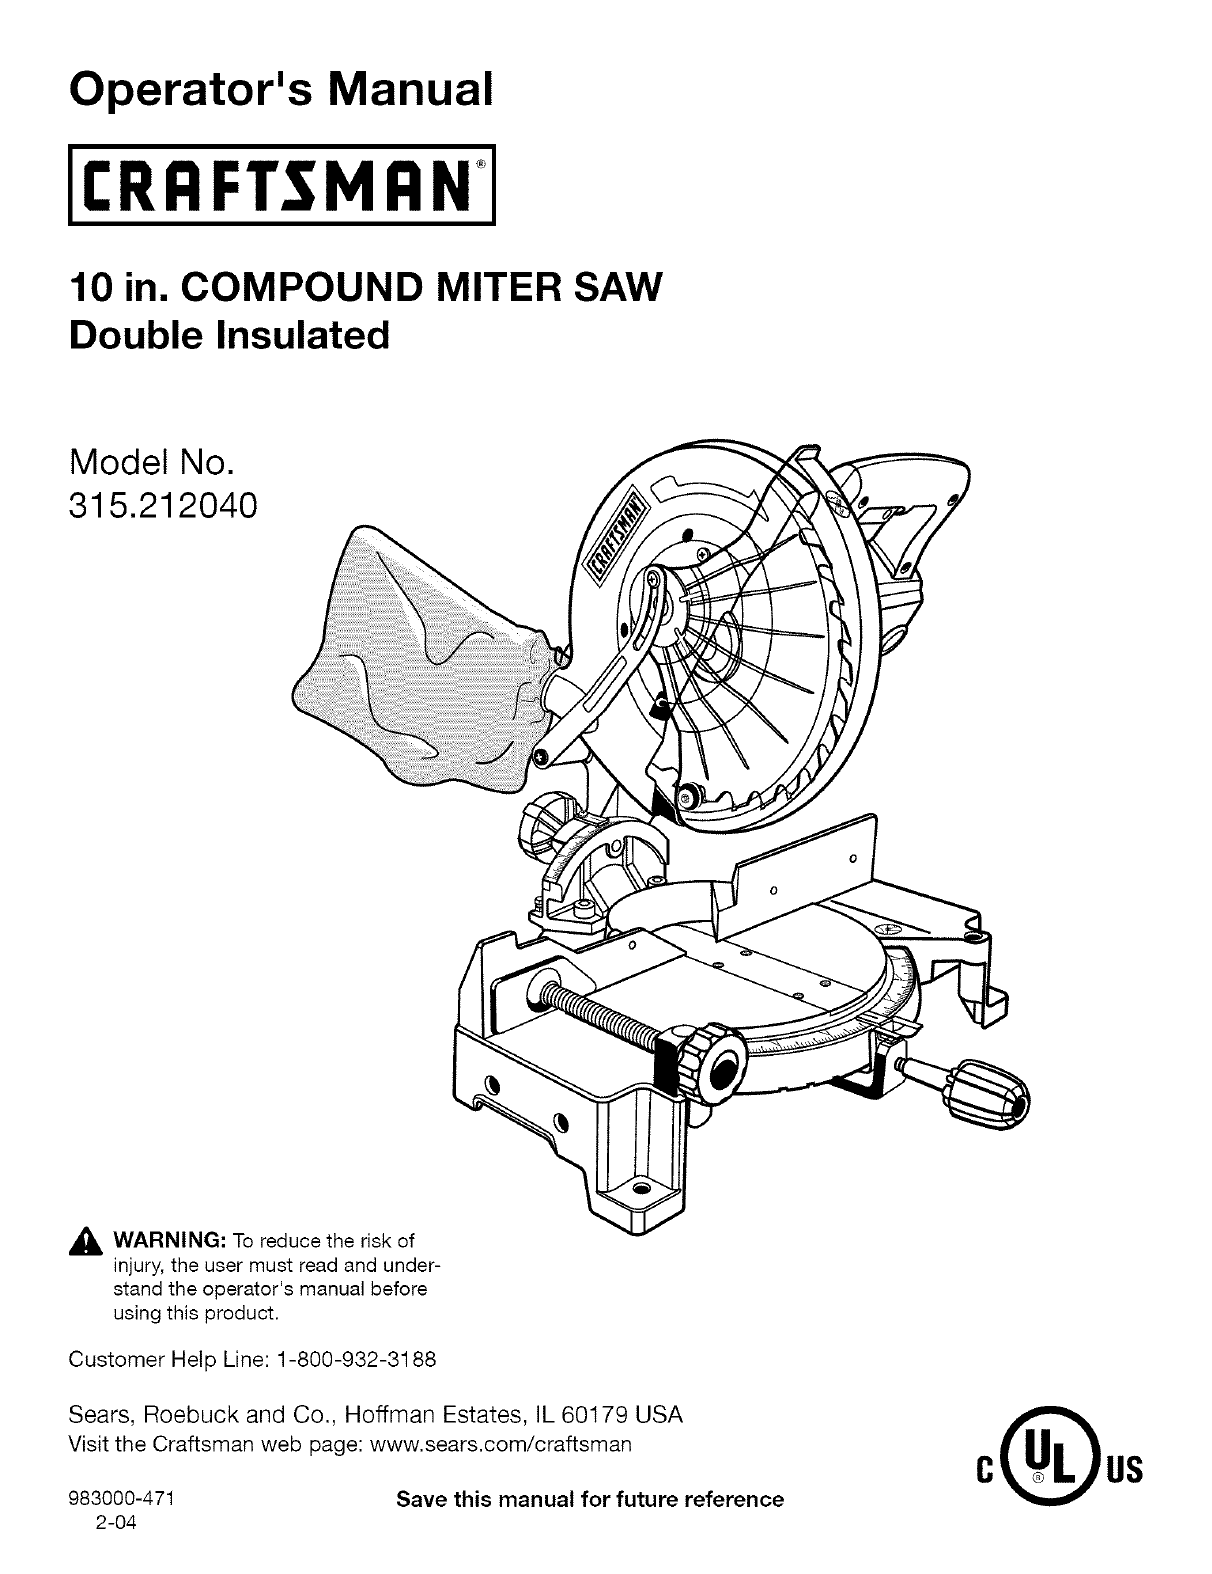 craftsman 315212040 user manual 10 compound miter saw manuals and guides  l0410517